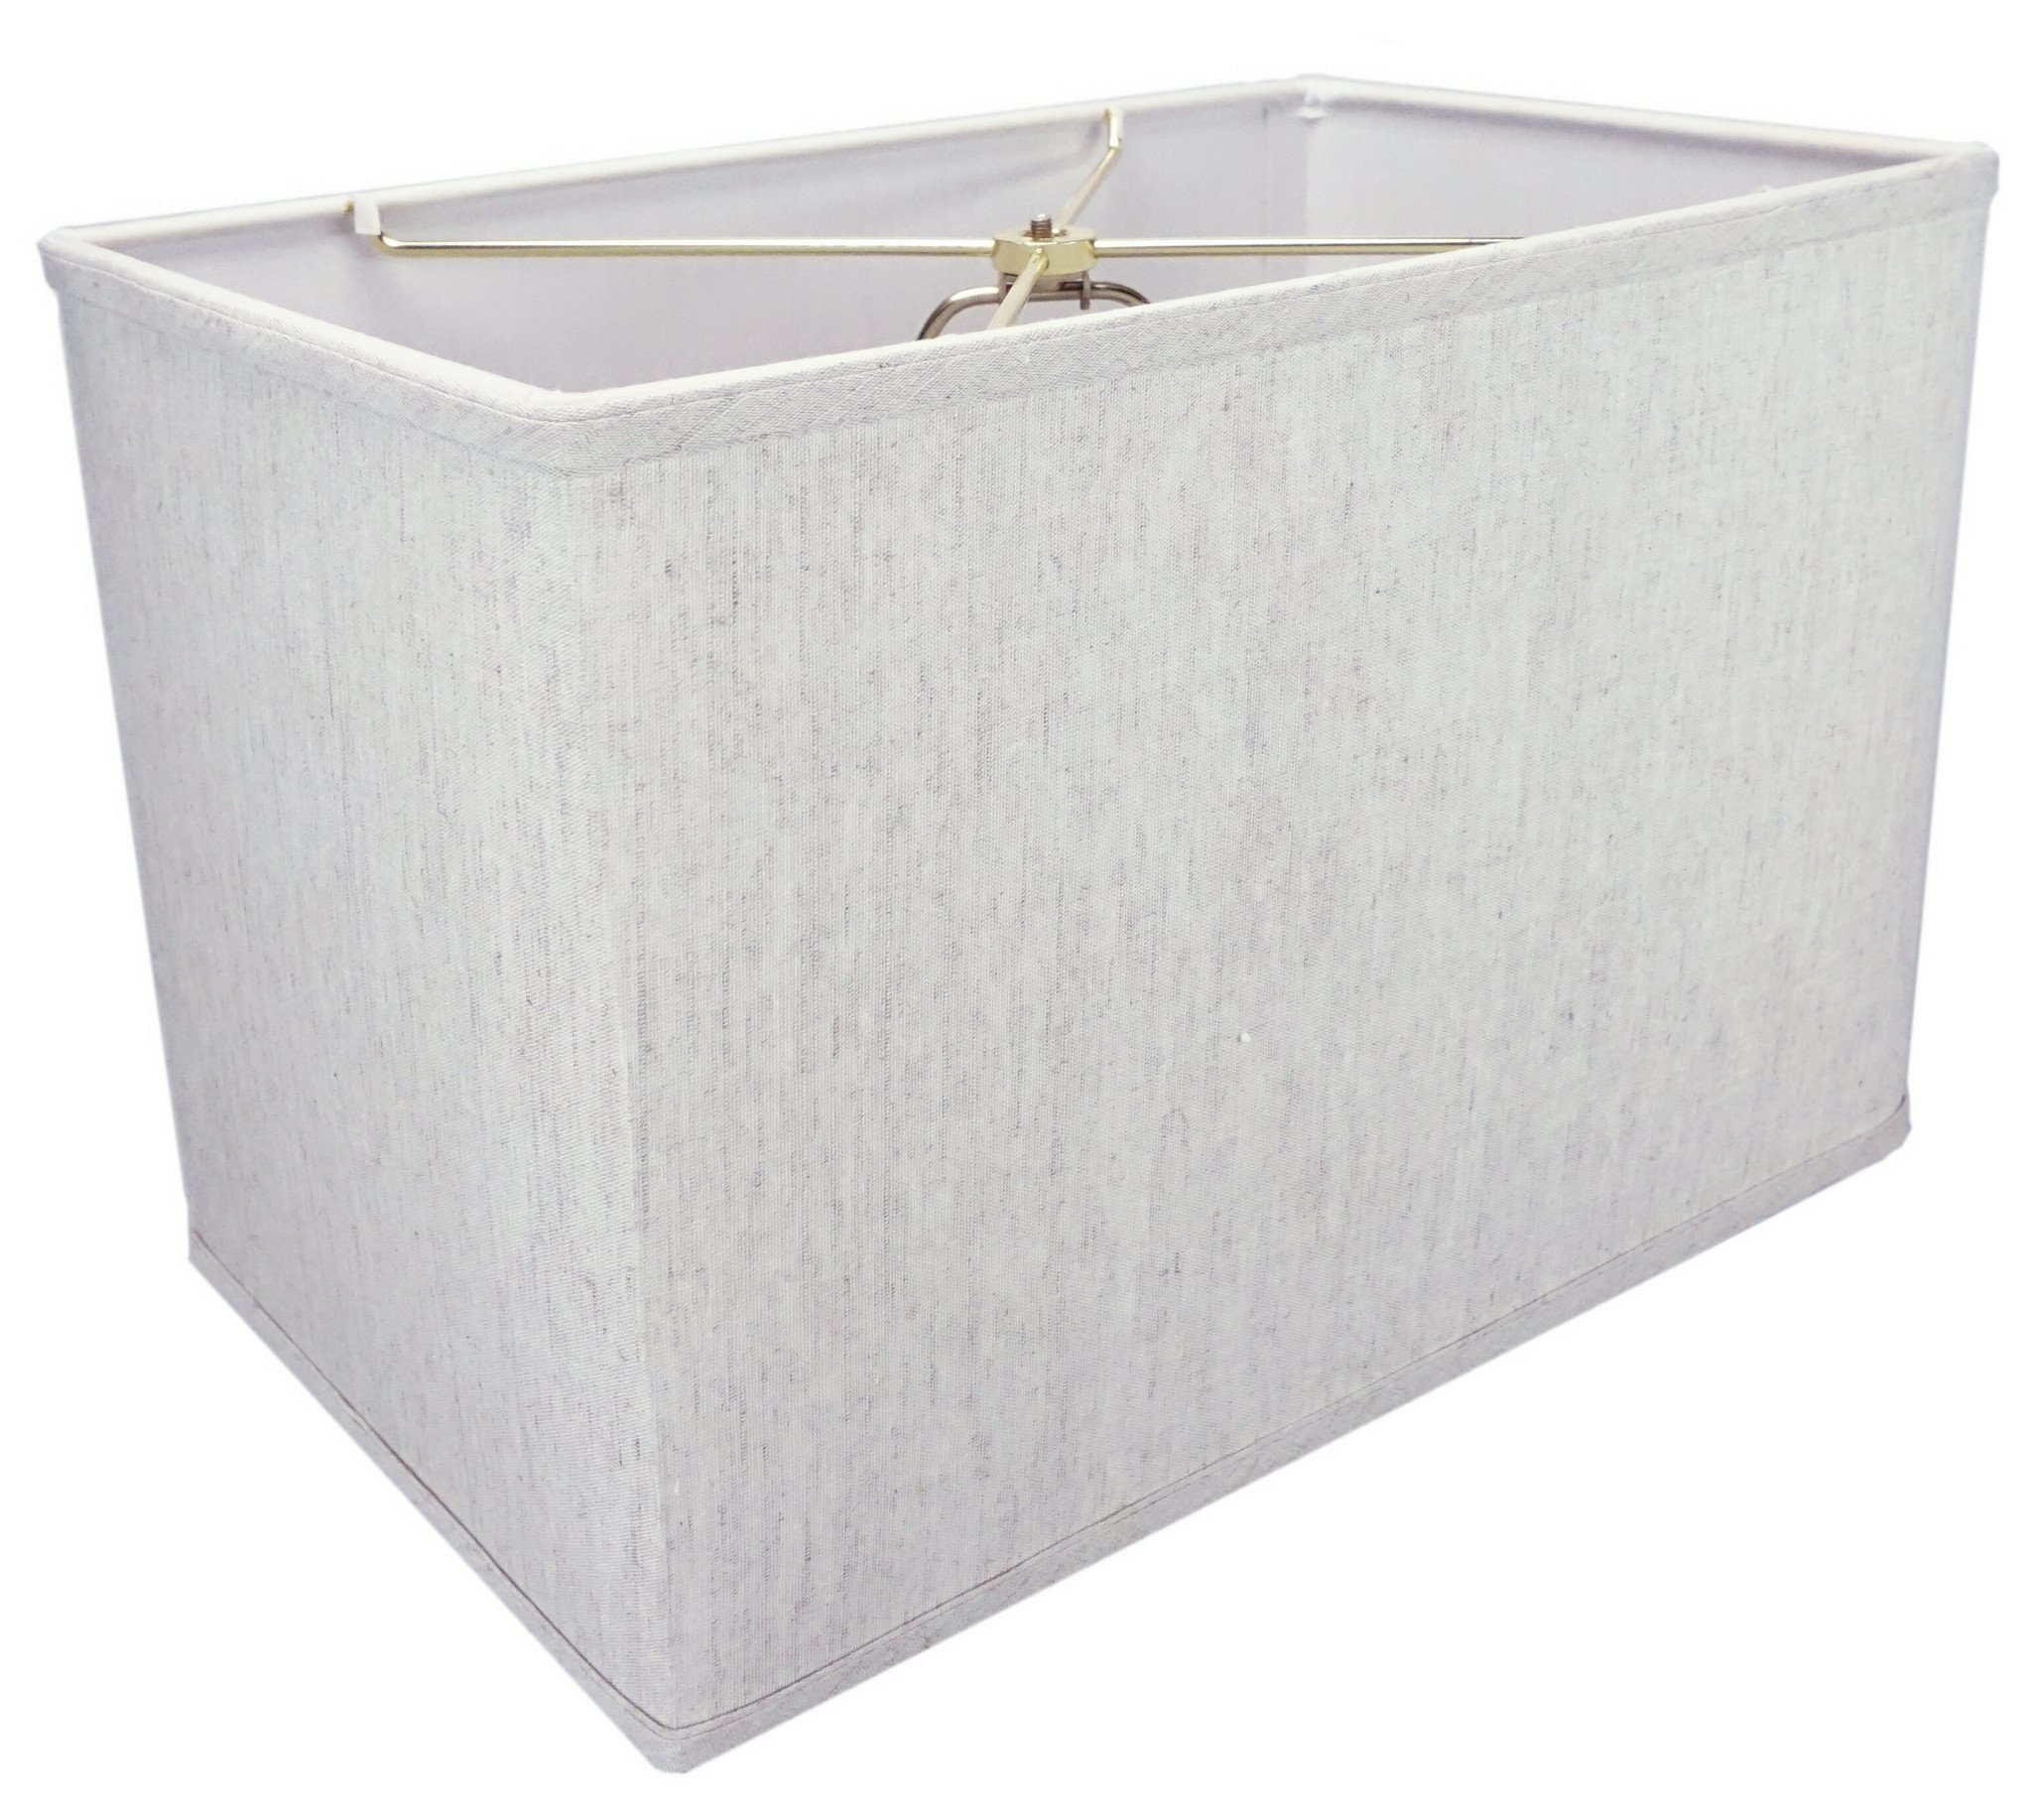 (10x16) x(10x16) x11 Rectangular Drum Lampshade Textured Oatmeal Linen with Brass Spider fitter By Home Concept - Perfect for table and Floor lamps - Large, Off-White